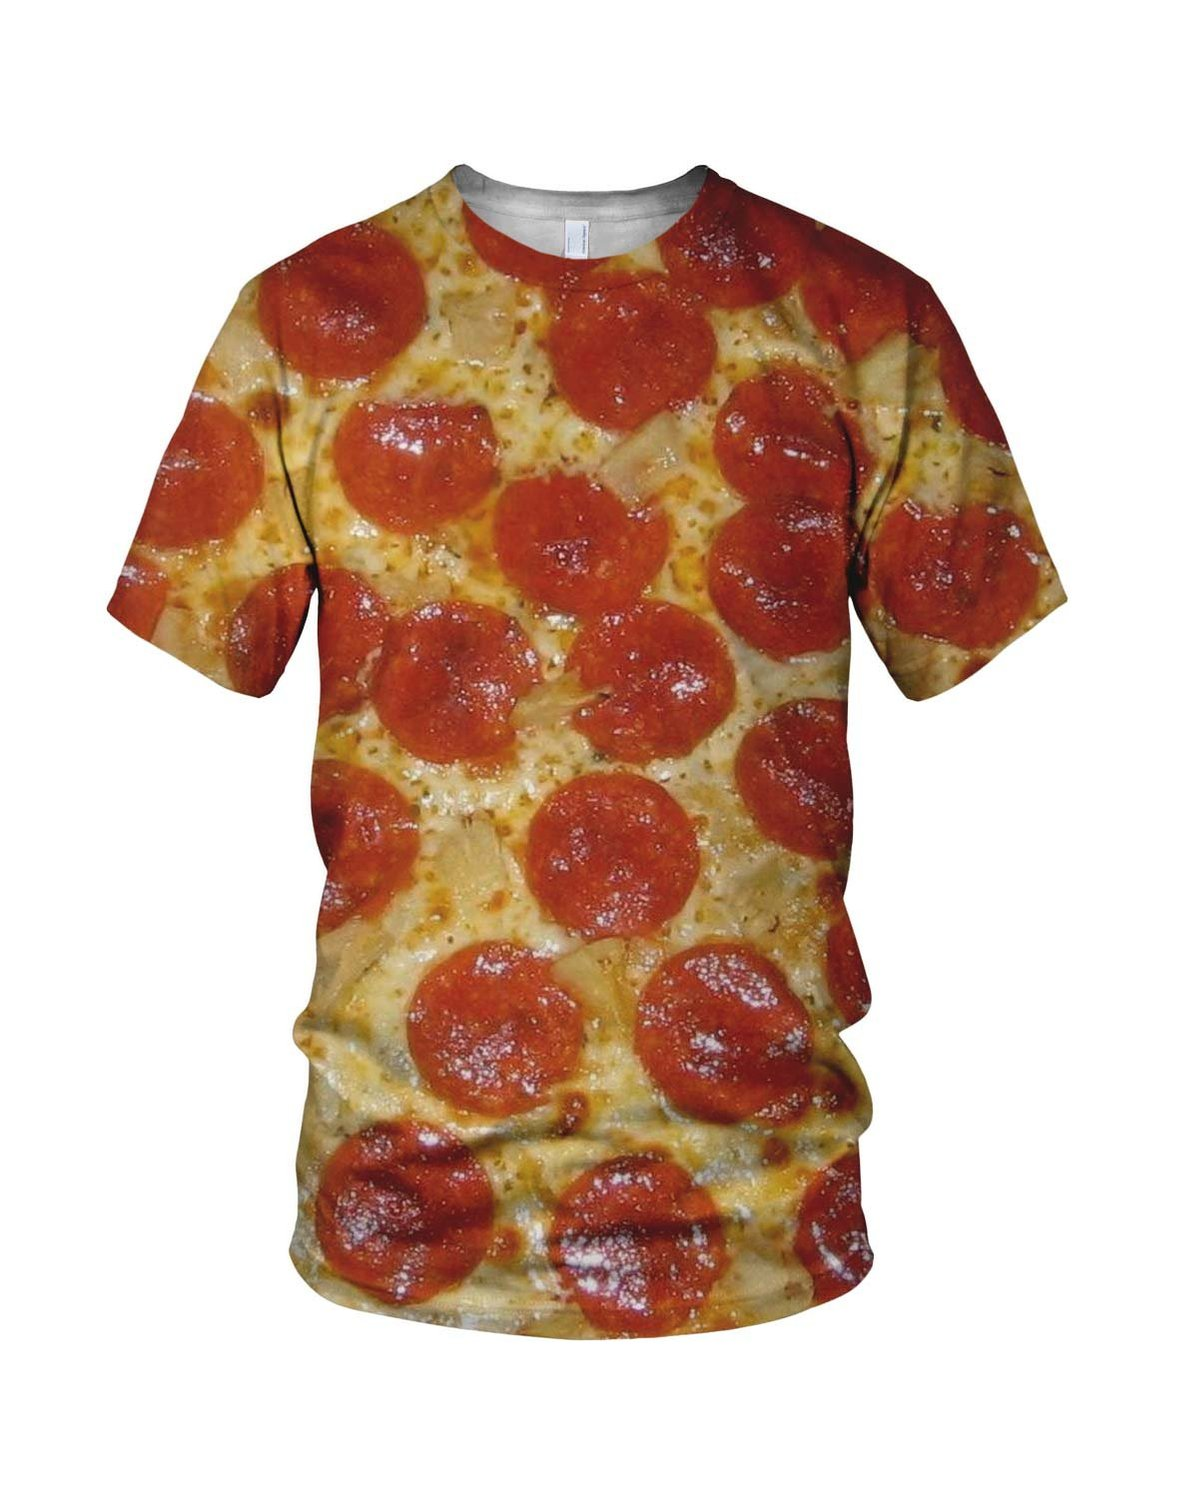 All Over 3D Print Pizza Lover Fashion Men's T Shirt at Amazon Men's Clothing store: